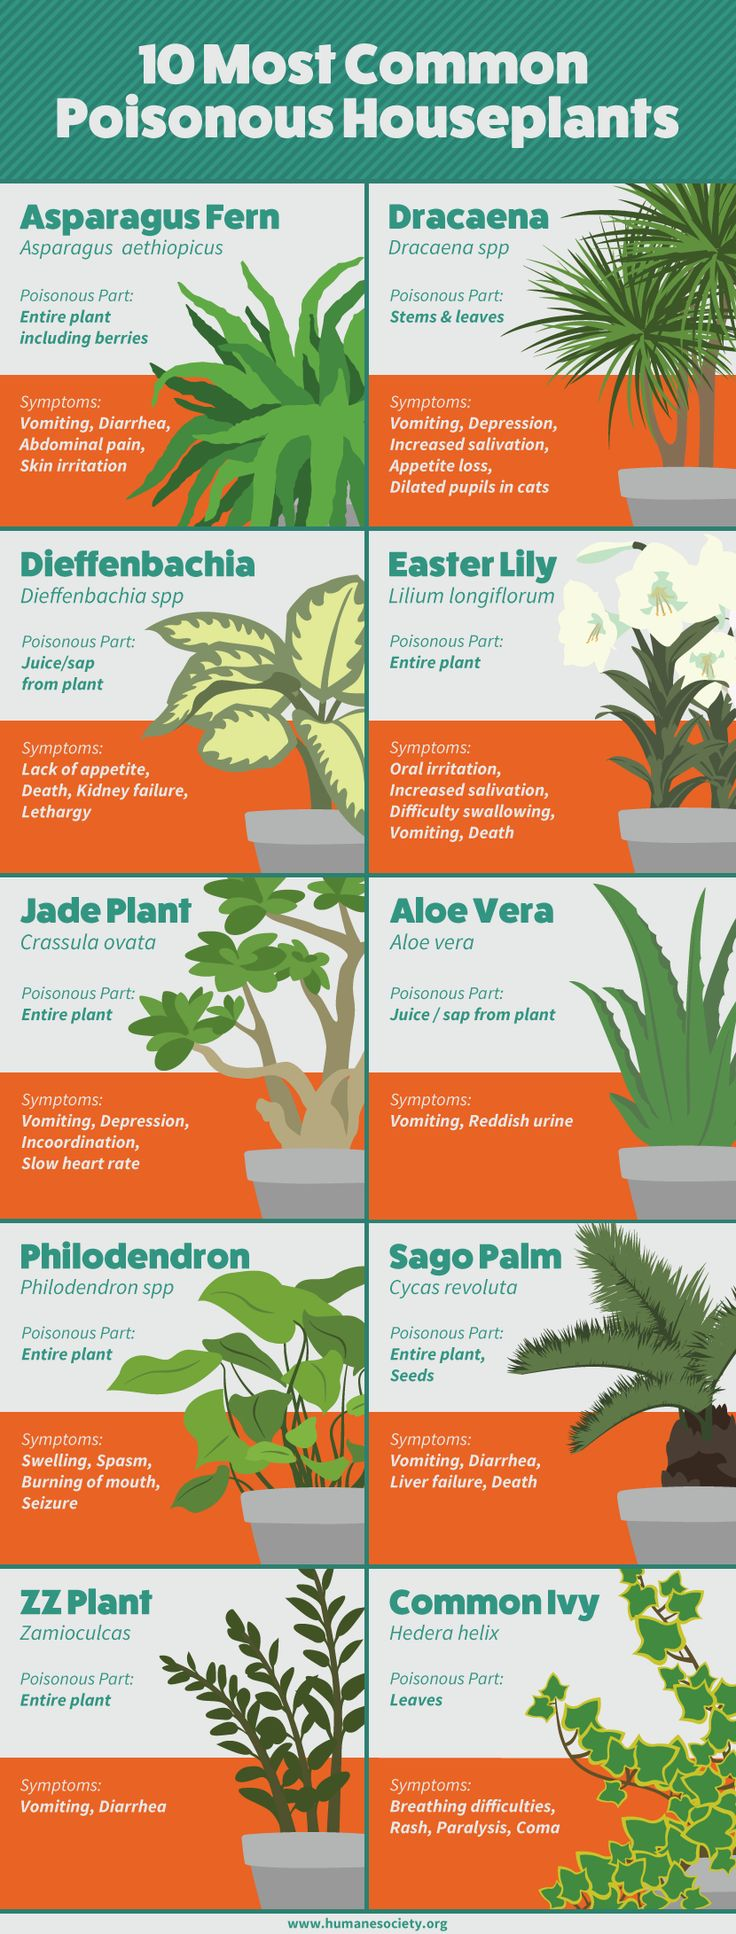 Ten Most Common Poisonous Houseplants